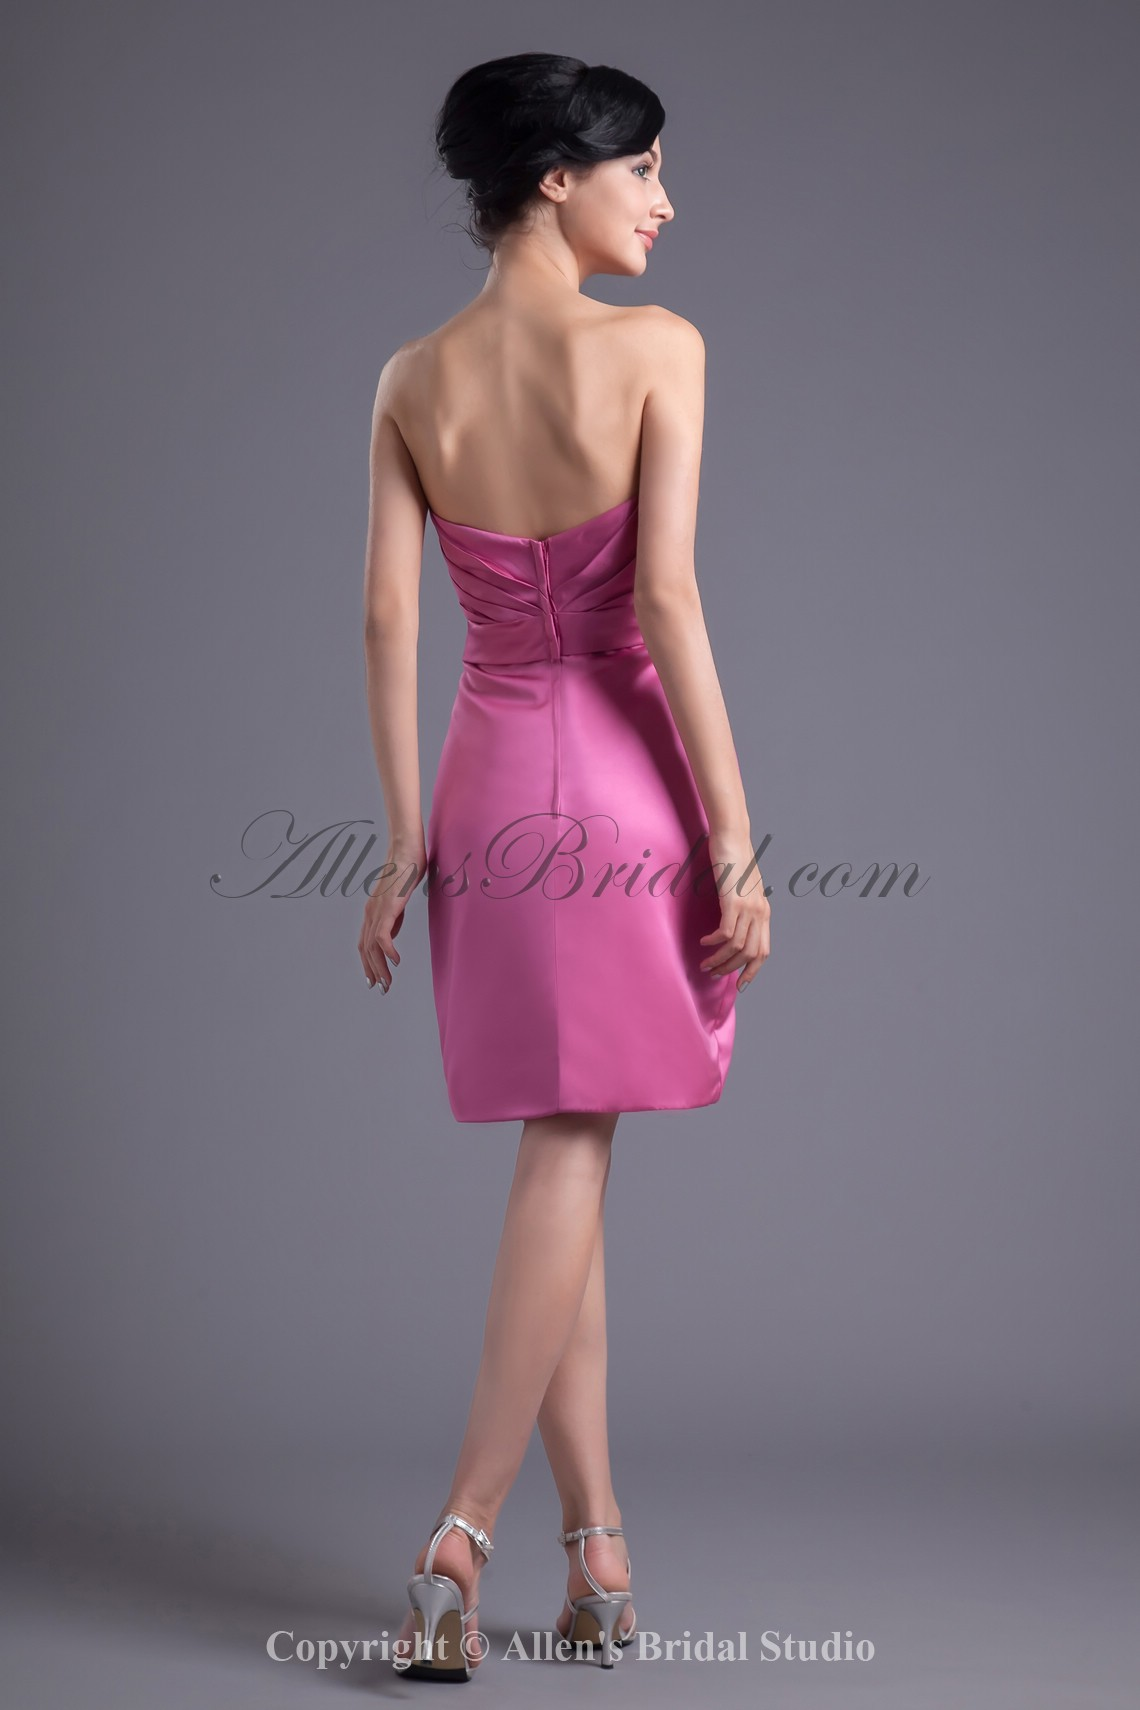 /44-352/satin-strapless-neckline-column-knee-length-hand-made-flower-cocktail-dress.jpg